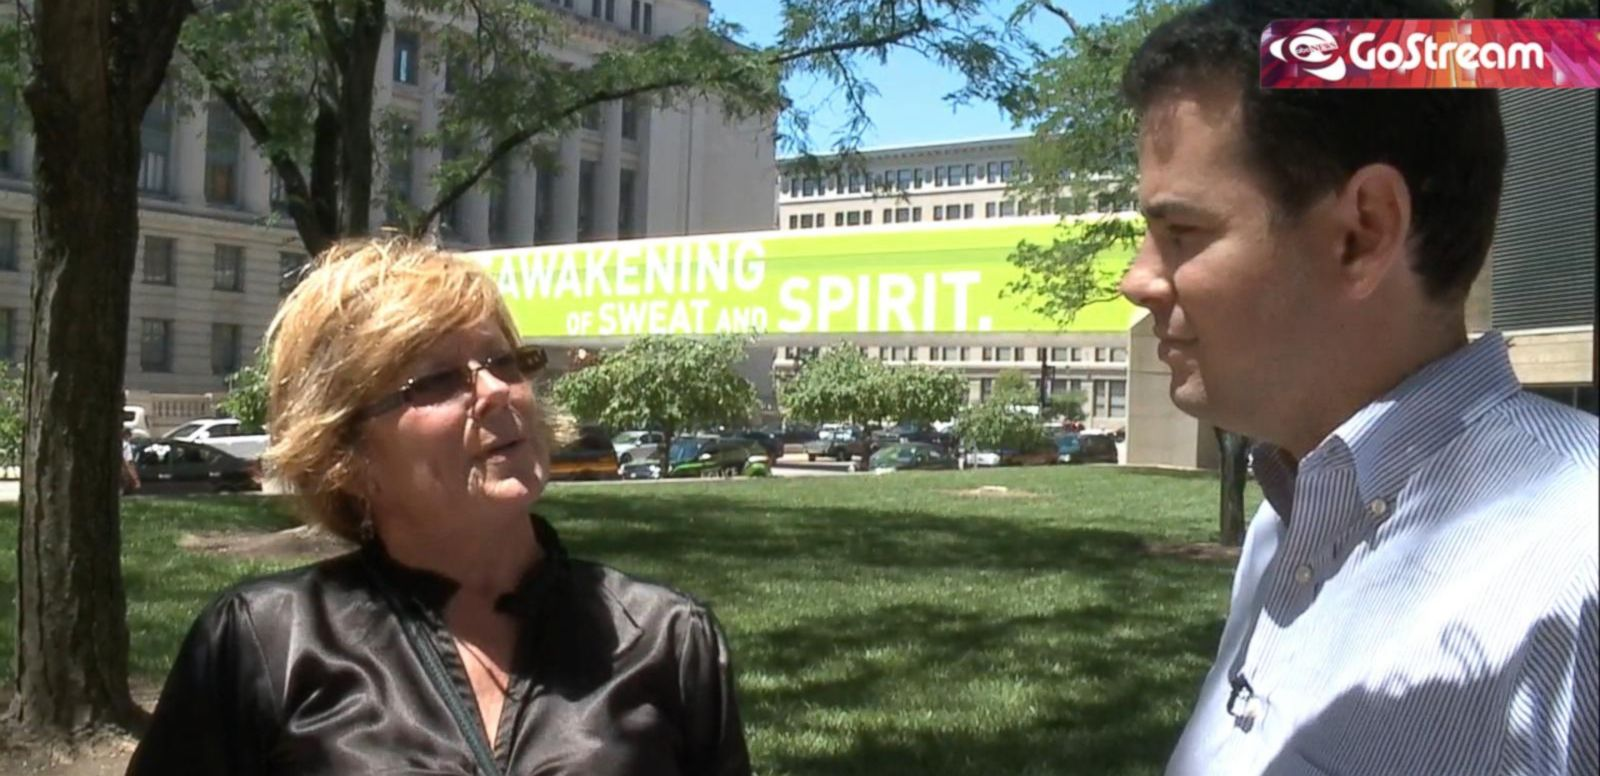 VIDEO: GoStream: Outside Courthouse Where U. of Cincinnati Officer Arraigned on Murder Charges